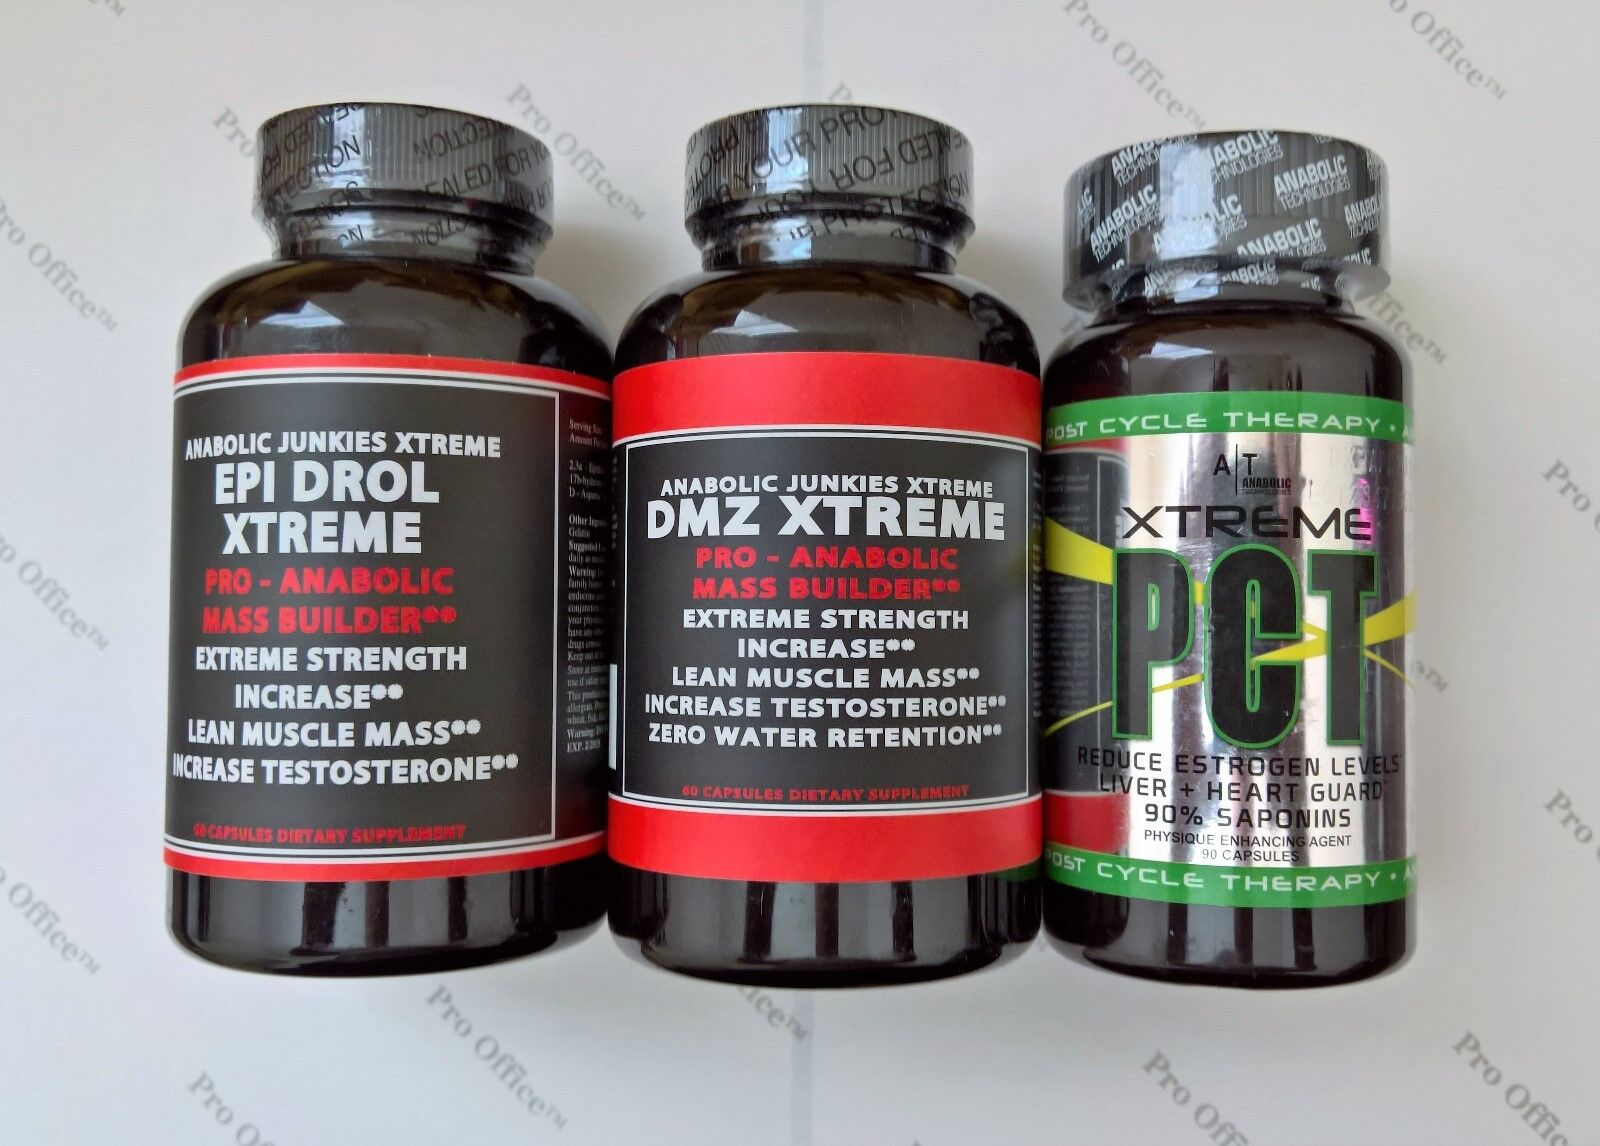 Gat testrol review Try and Buy Vimax Male Enhancement